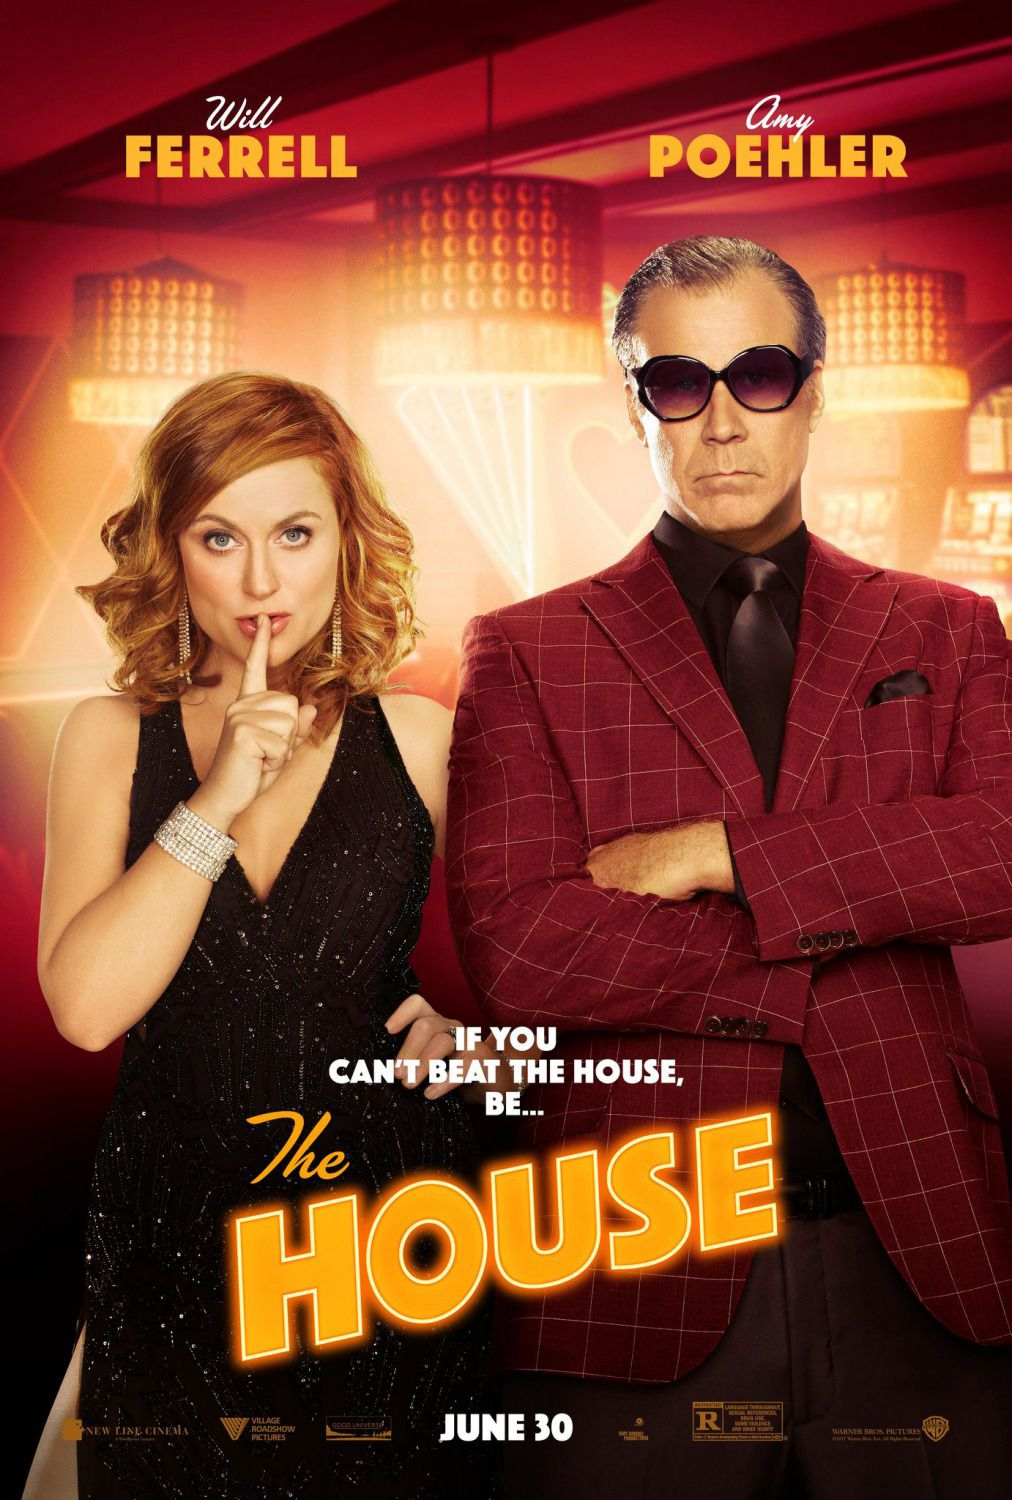 The House - film comedy poster - Will Ferrell - Amy Poehler